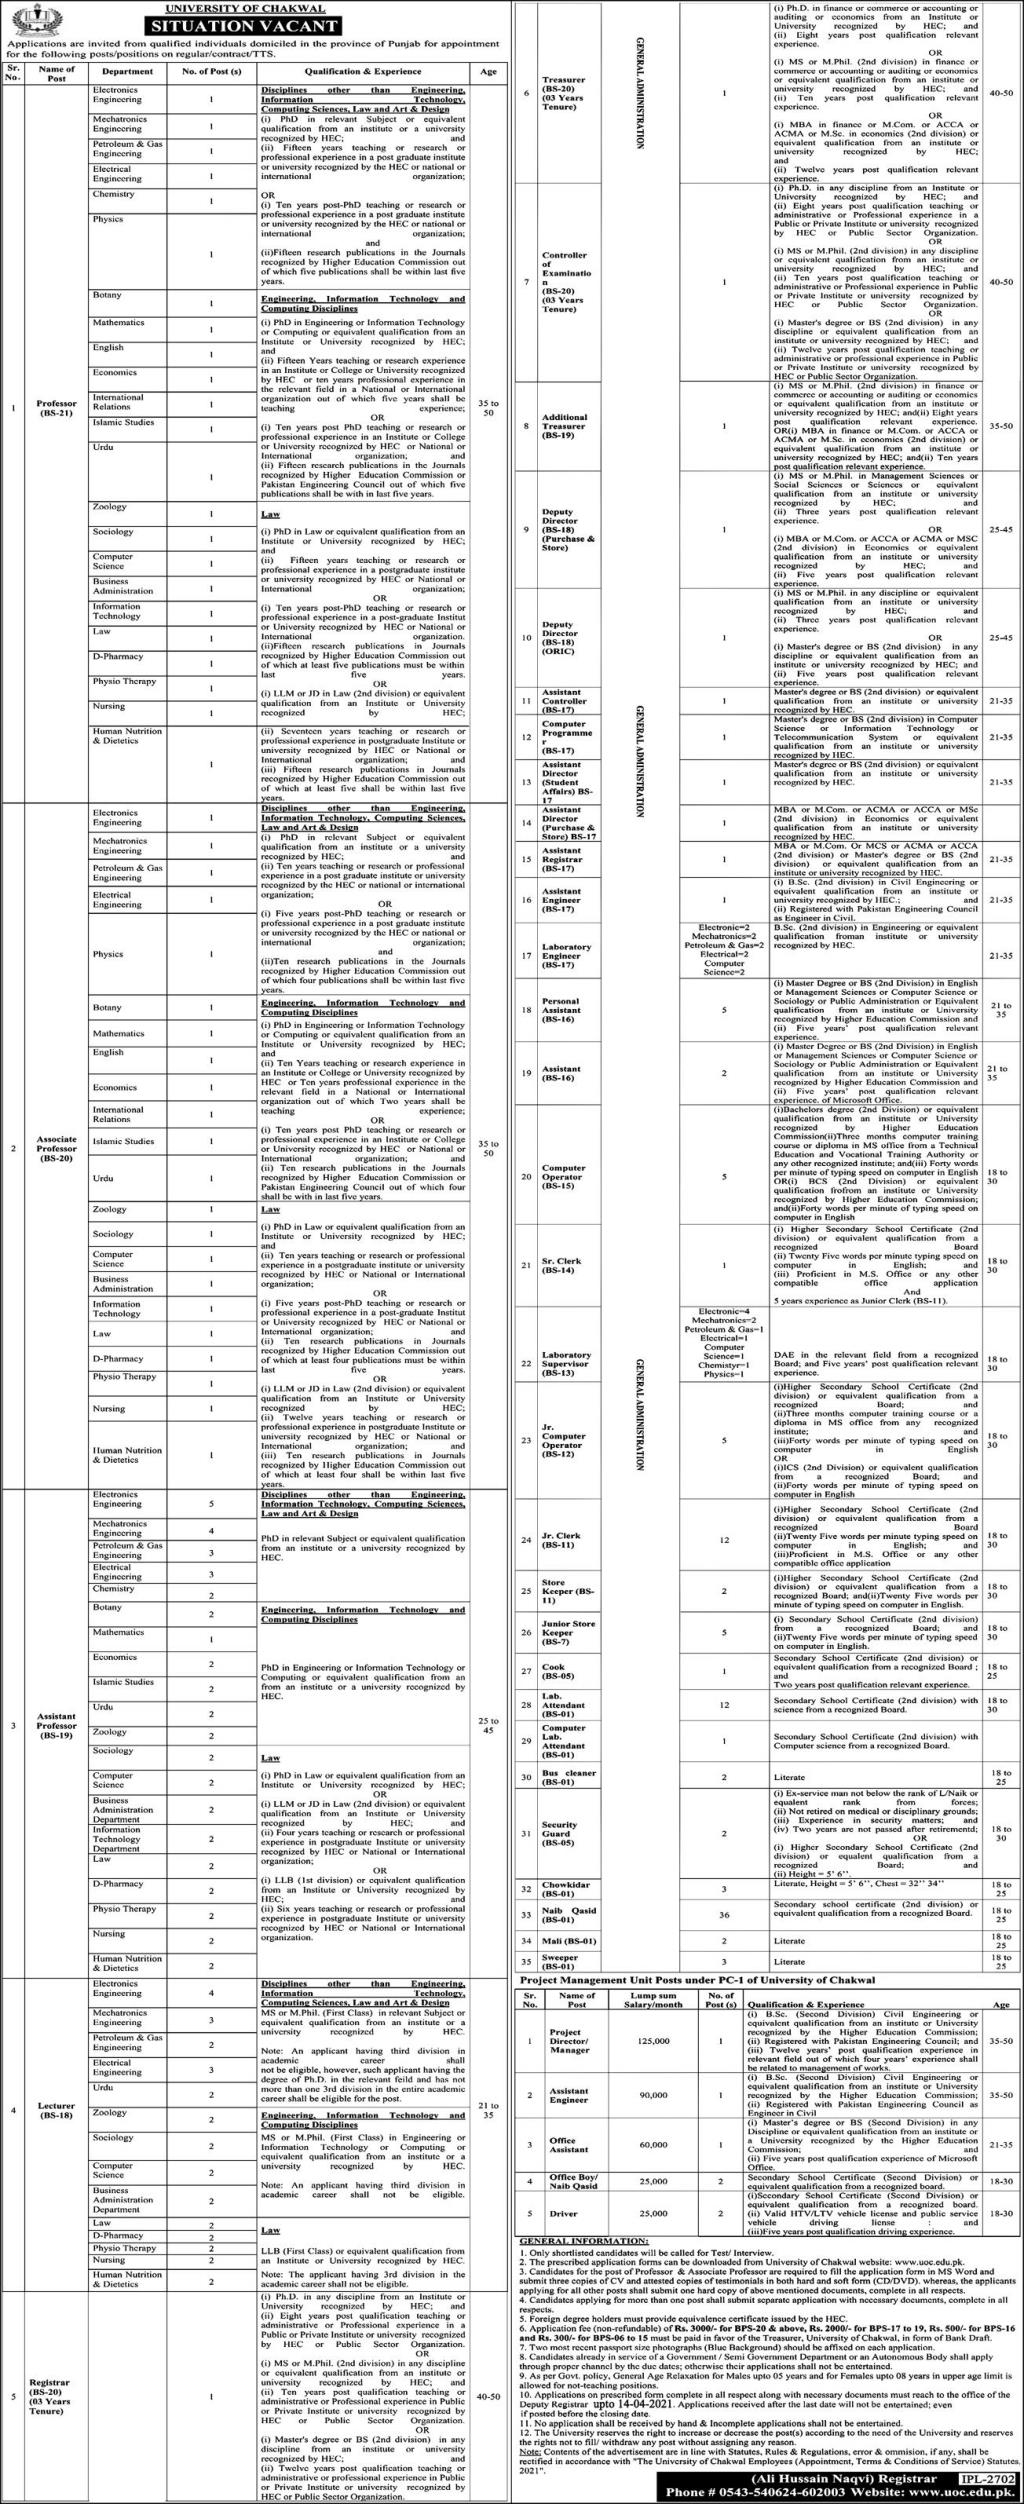 University of Chakwal UOC Jobs 2021 in Pakistan - Download University of Chakwal UOC Job Application Form :- www.uoc.edu.pk - How to Apply For University of Chakwal UOC Jobs 2021